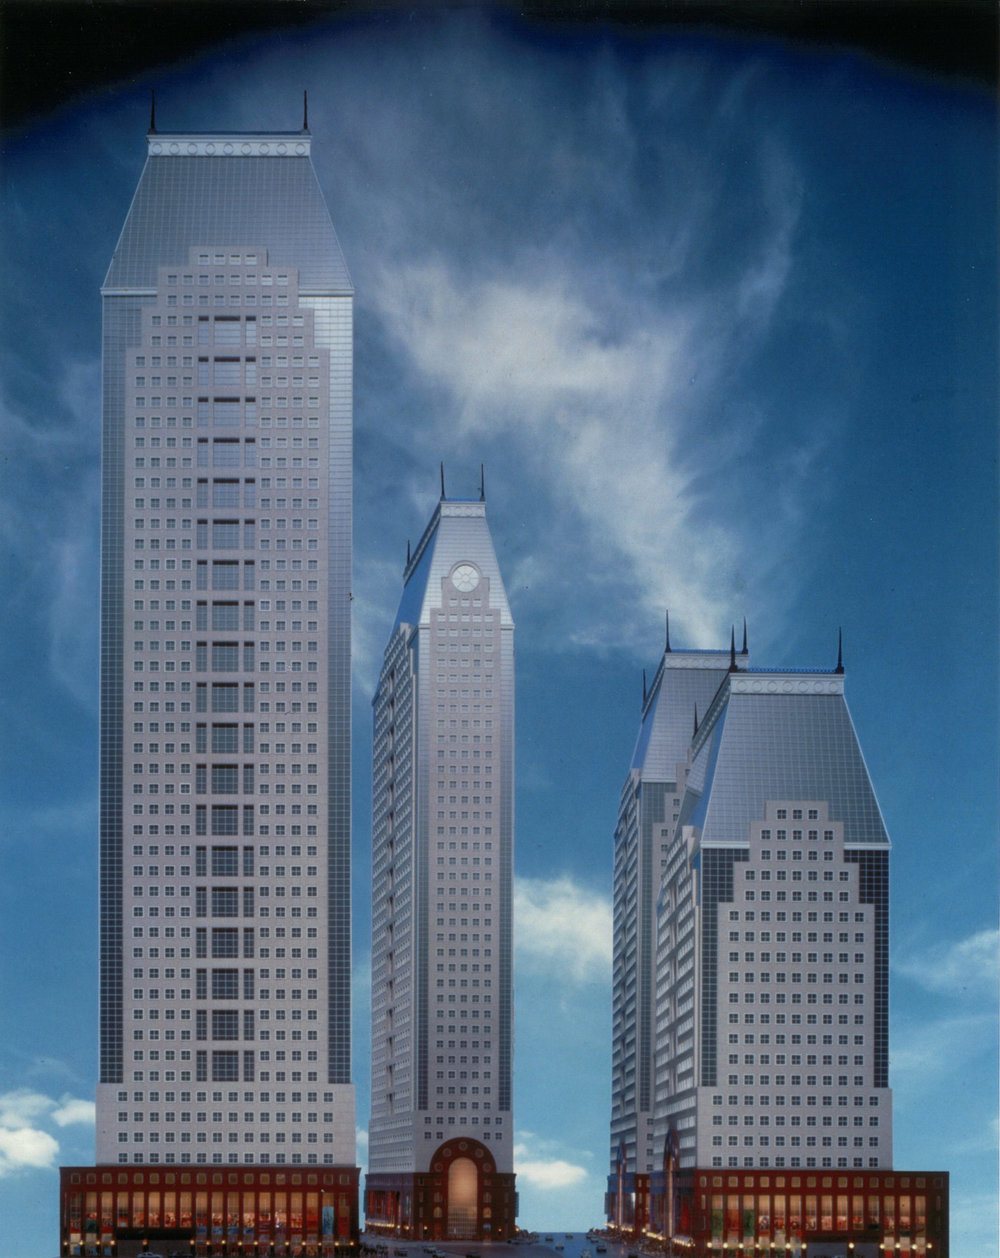 Original designs for the office tower developments that were set to anchor the project on east side of 42nd Street. The buildings were designed by architects Philip Johnson and John Burgee for Park Tower Realty. Credit: Park Tower Realty and Thorney Lieberman